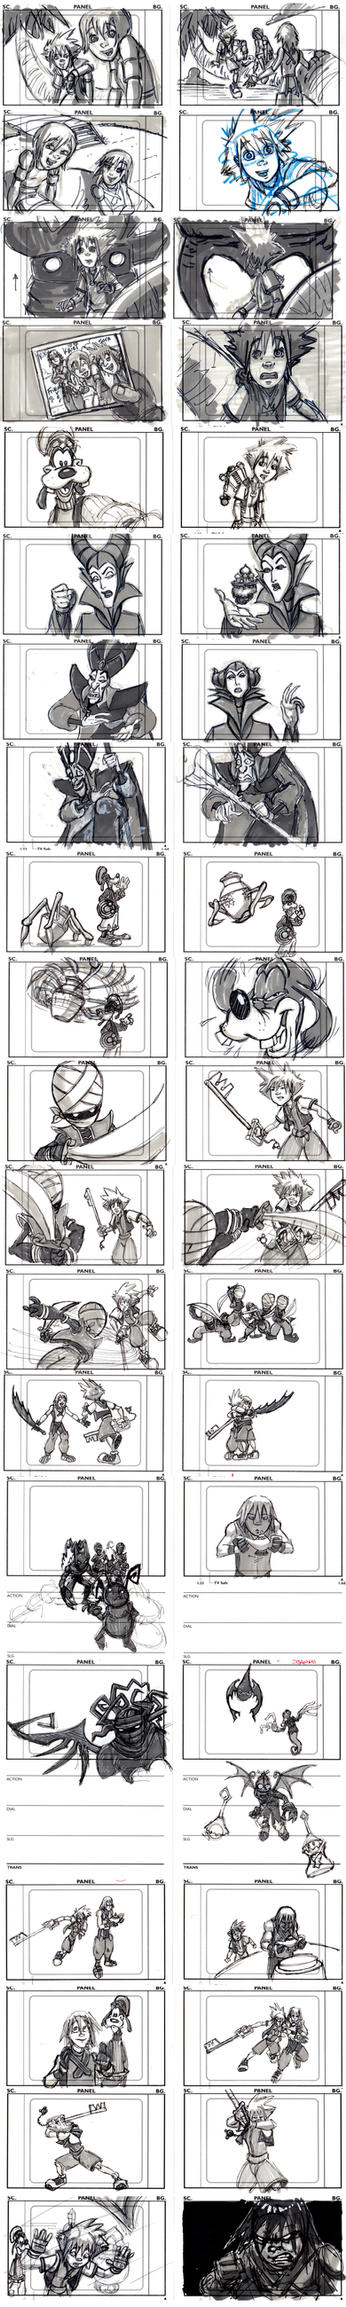 Kingdom Hearts Pilot Board by SethKearsley